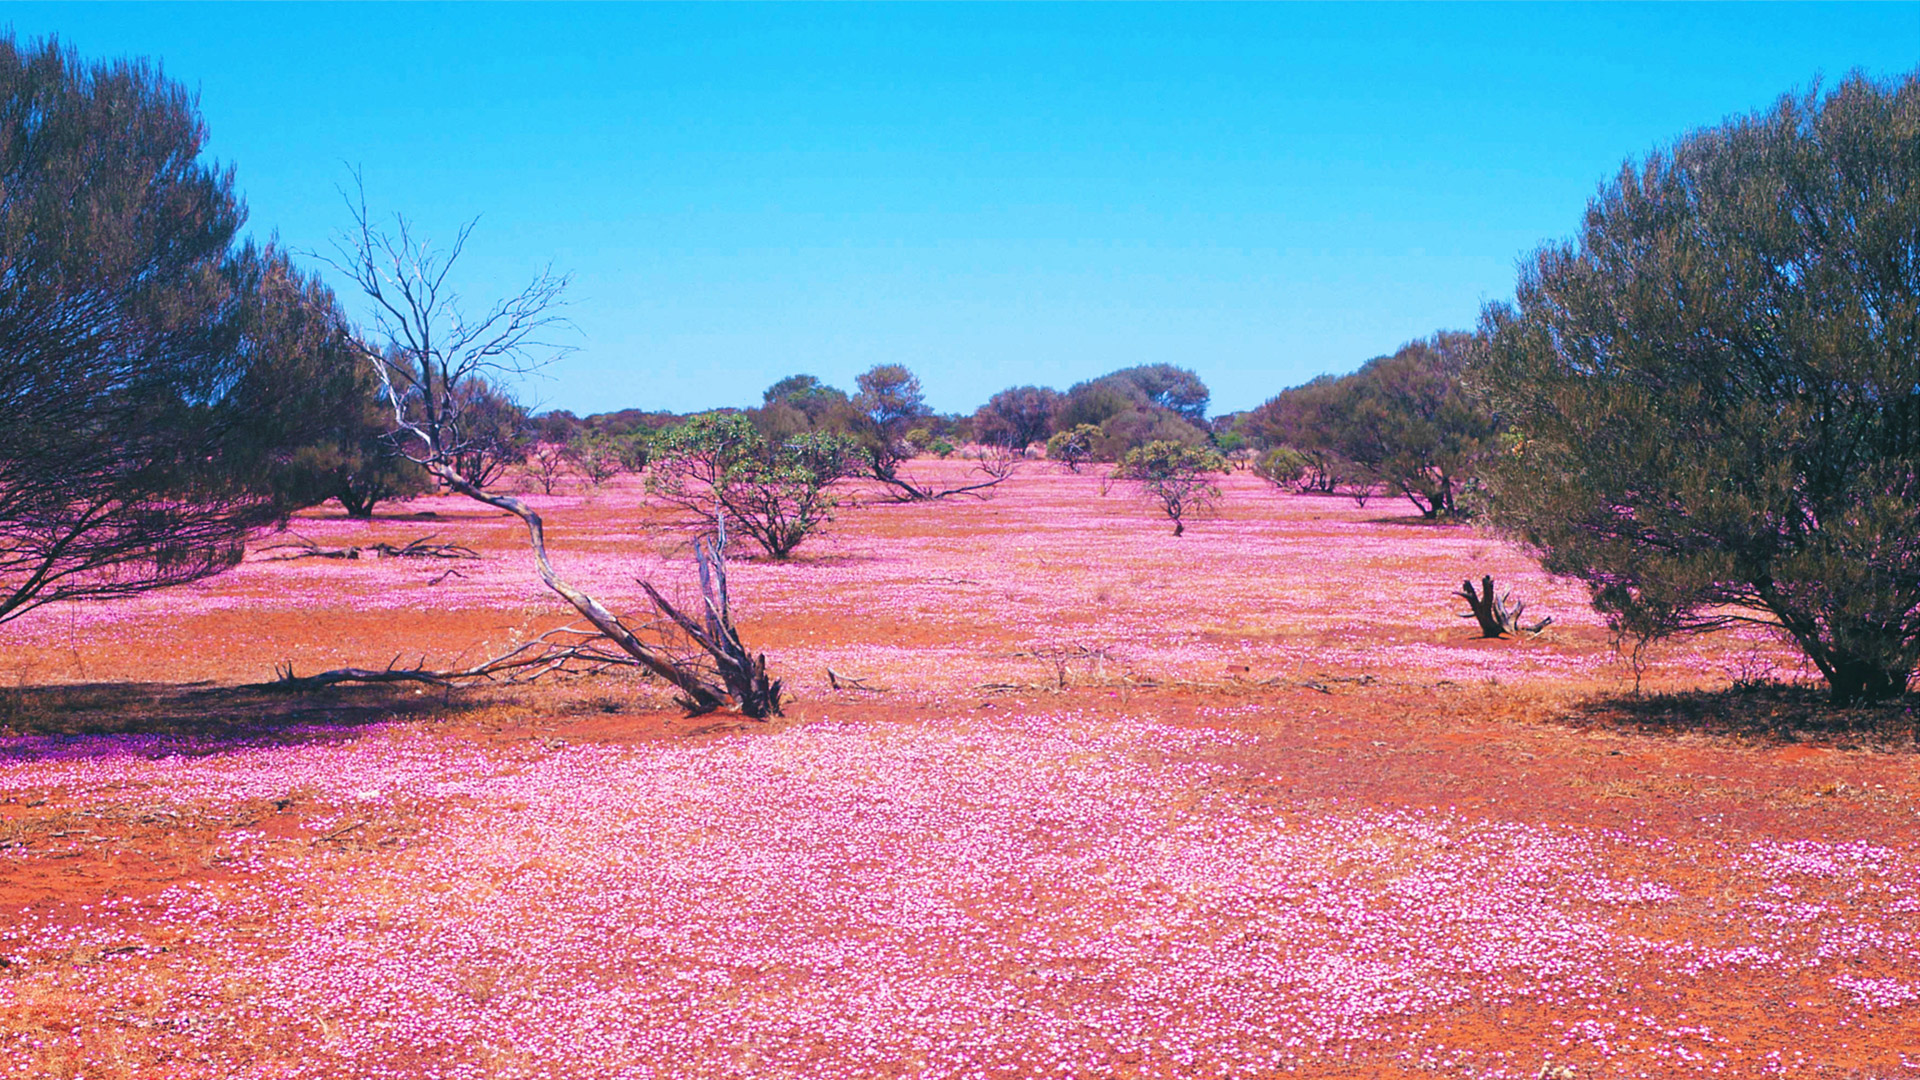 Field of pink wildfowers in the outback